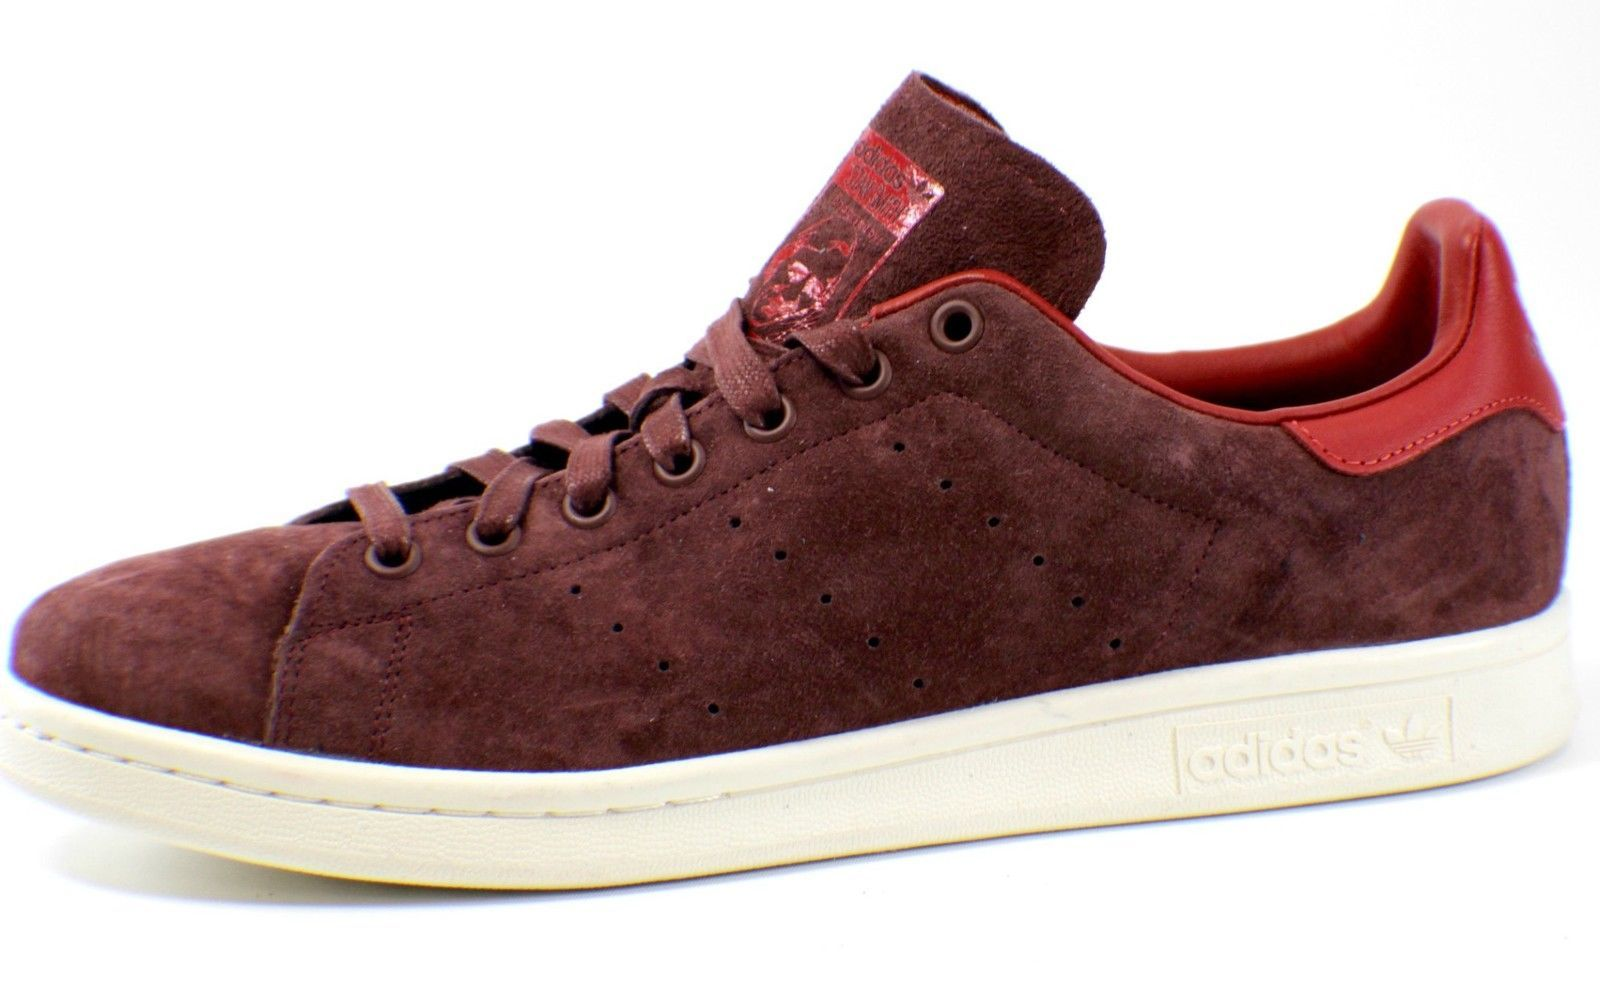 Details about Adidas Stan Smith Suede Suede Sneaker Shoe Fox Brown Burgundy M17924